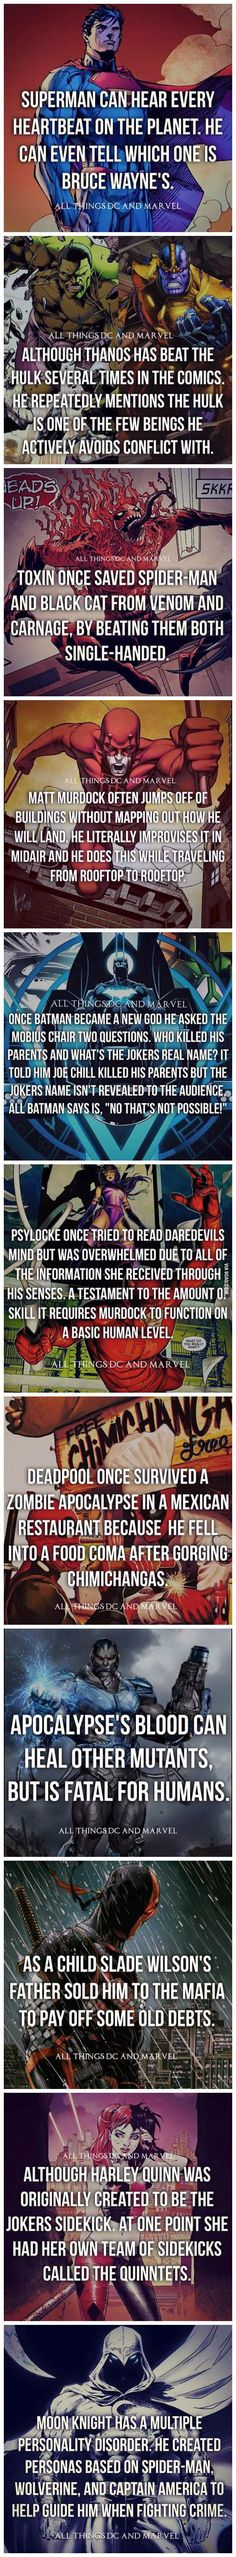 Superhero Facts: Part 1 - 9GAG